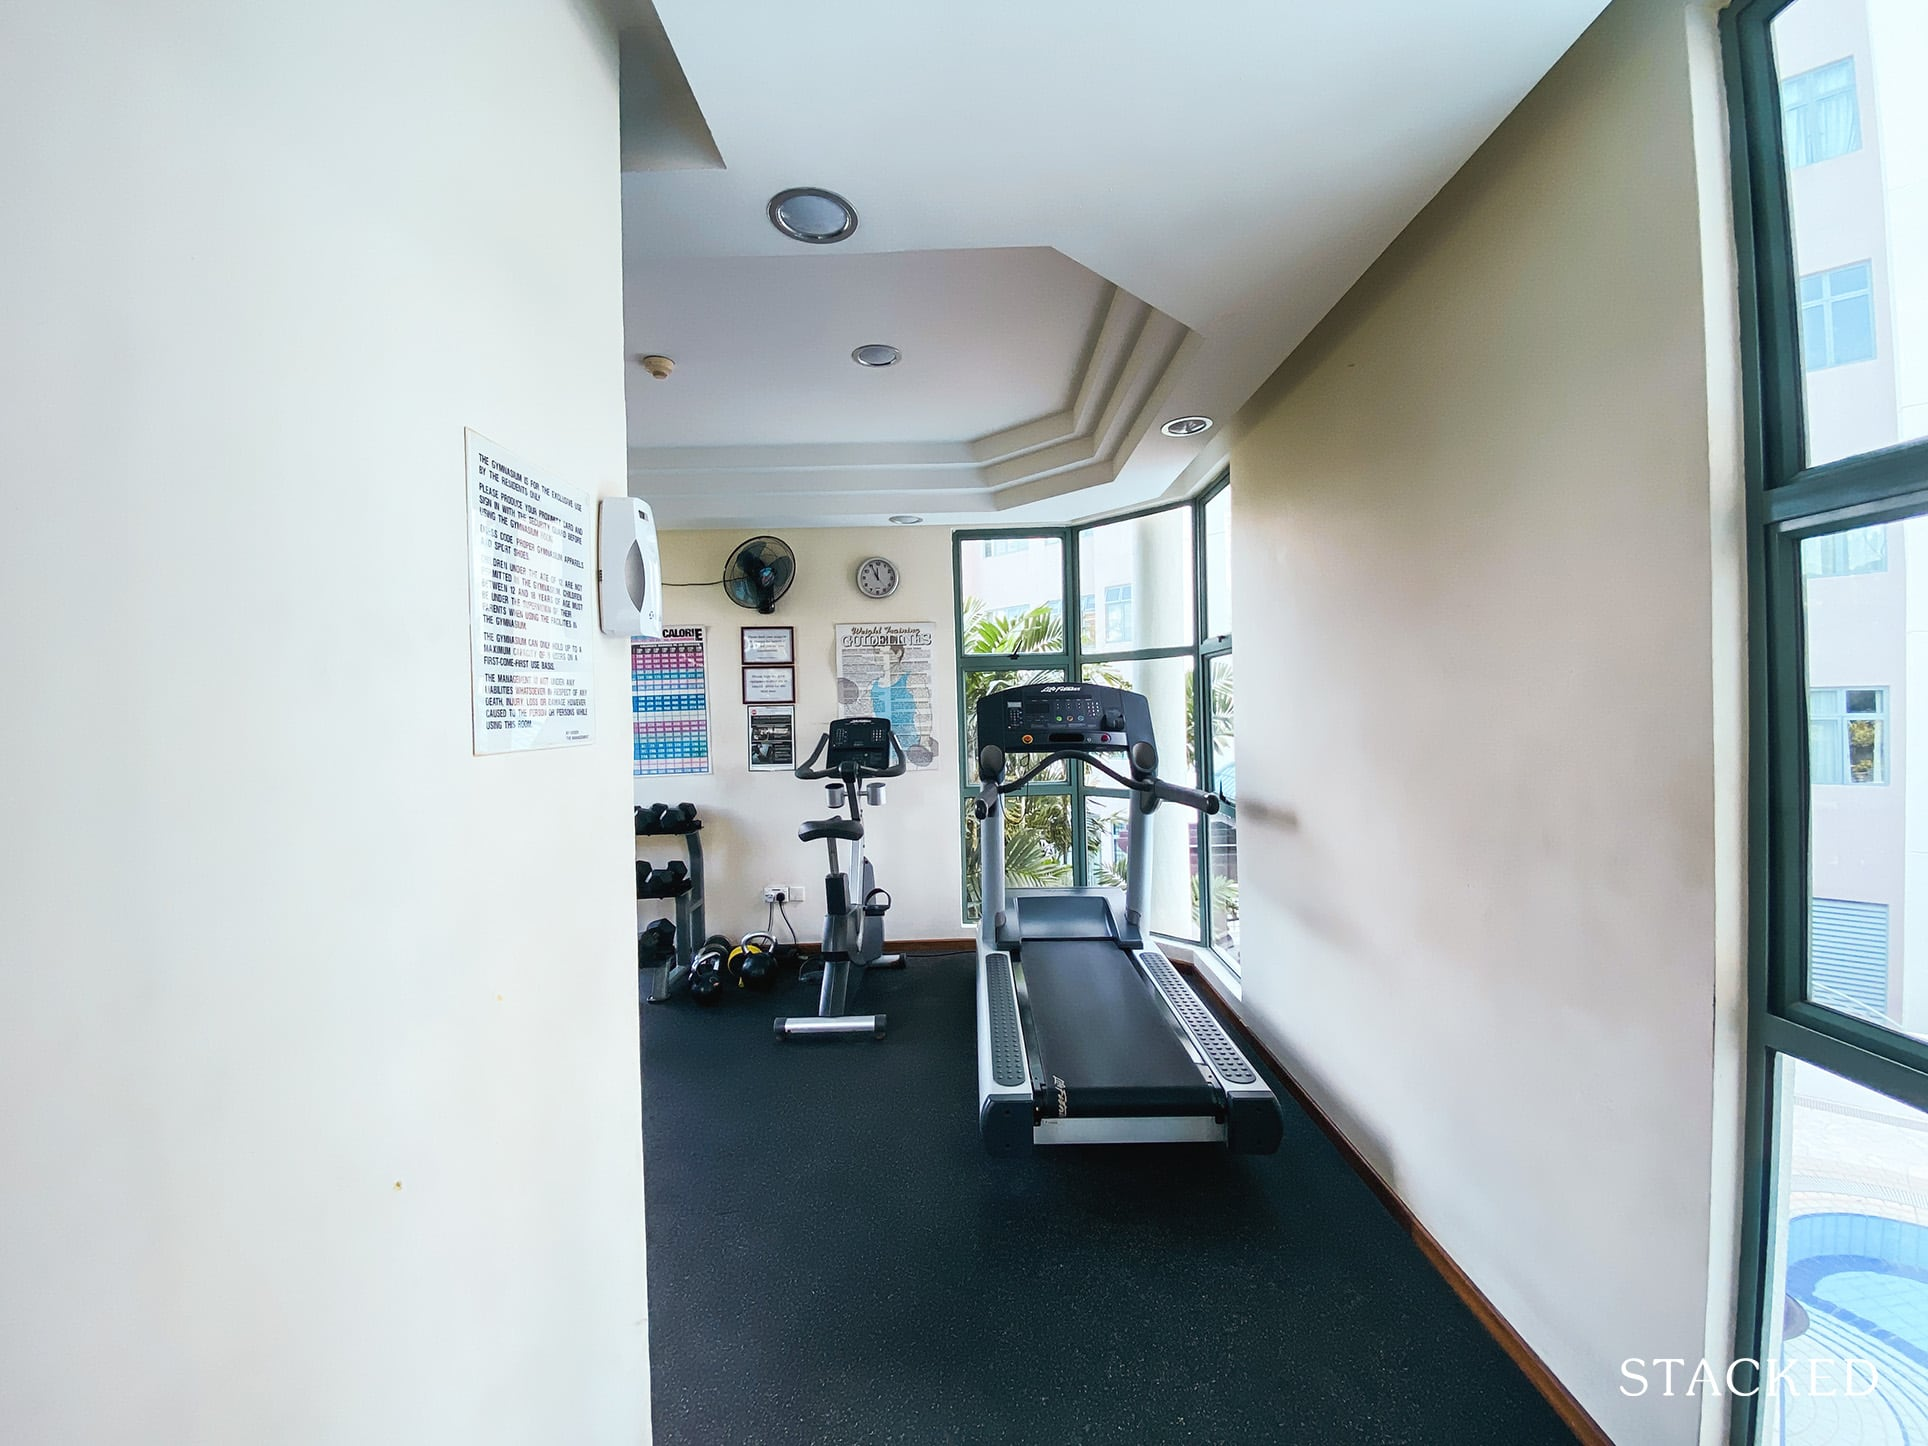 Tanglin regency gym